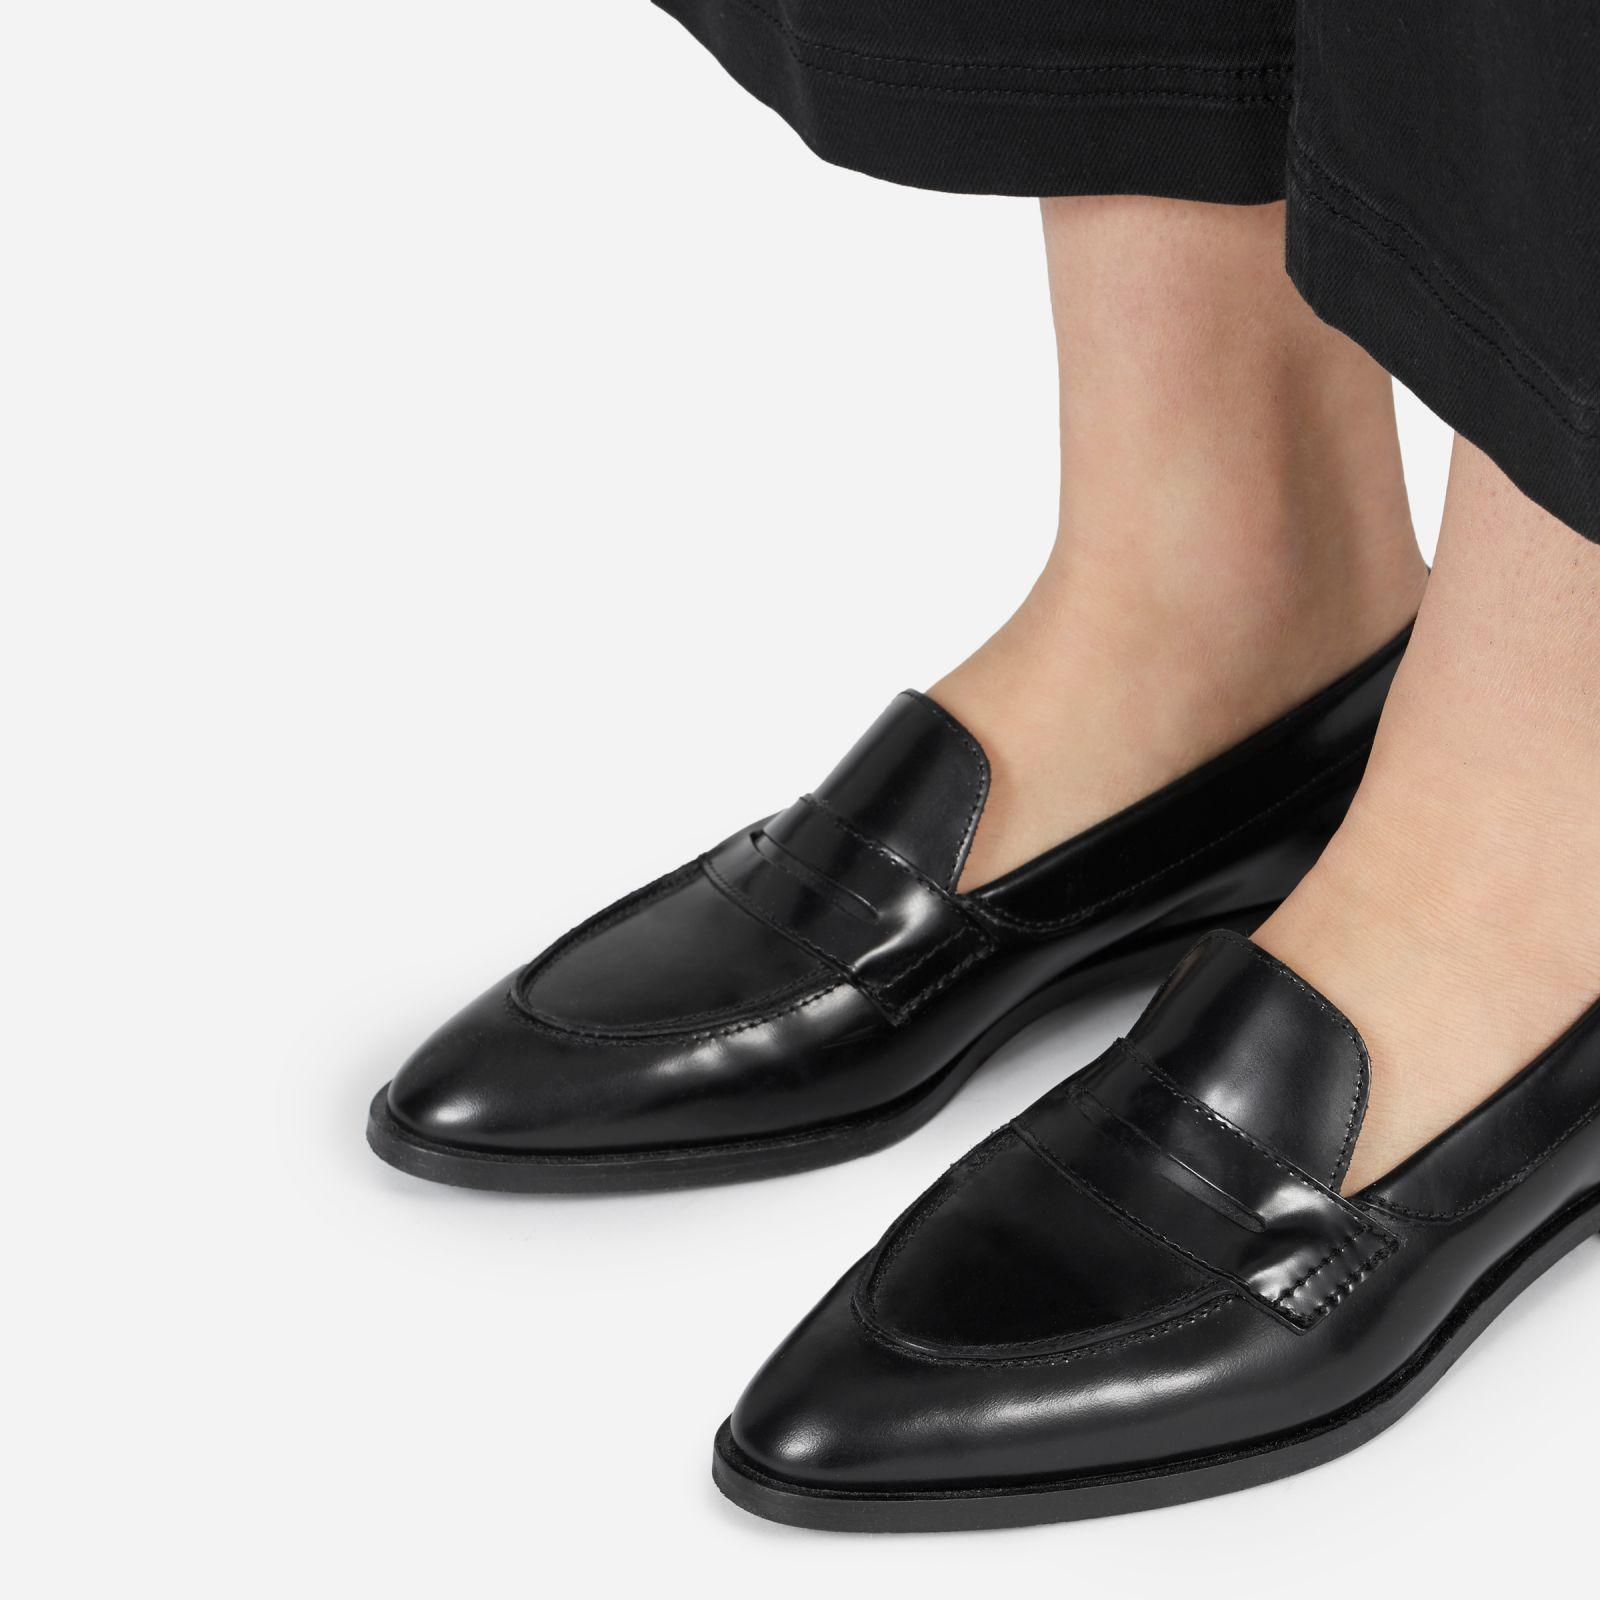 6d4258d4f07 Everlane - Black The Modern Penny Loafer - Lyst. View fullscreen